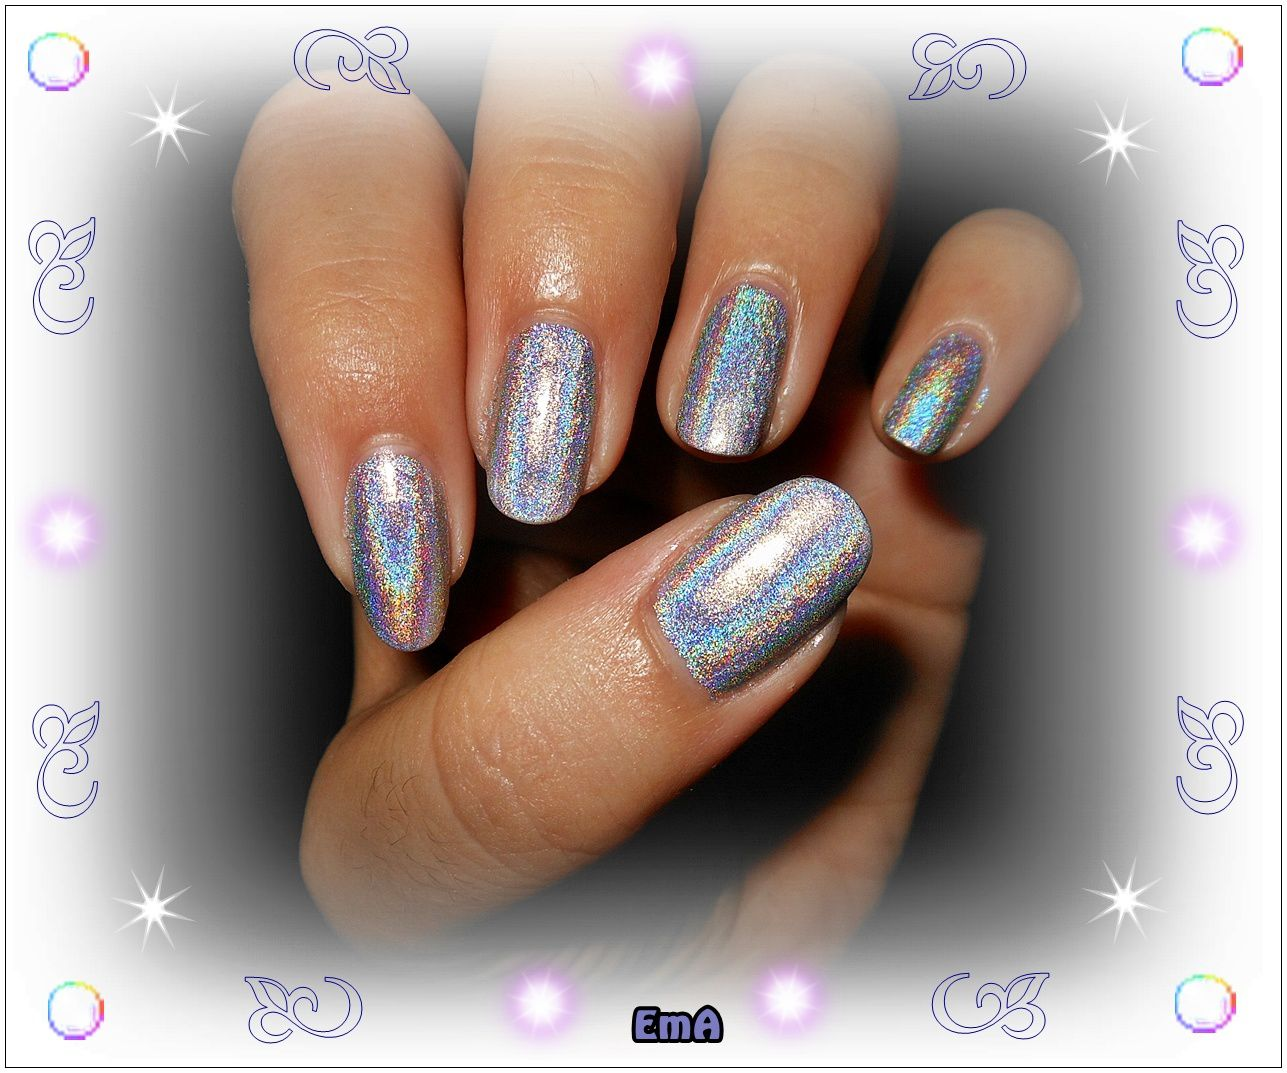 Color club holographic - Harp on it